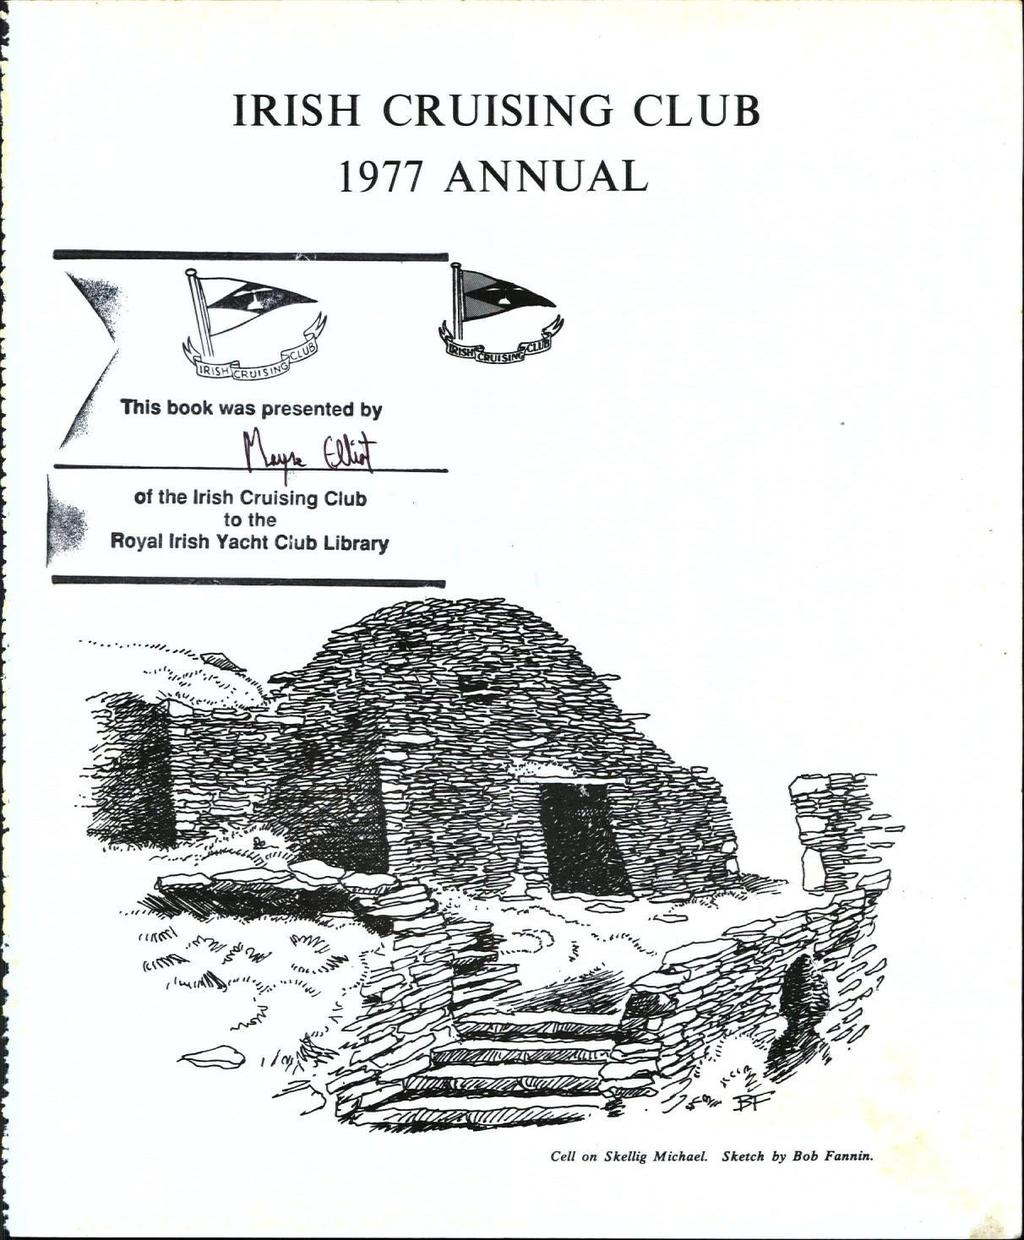 4bfb2f063a651 IRISH CRUISING CLUB 1977 ANNUAL  This book was presented by ~~ of the Irish